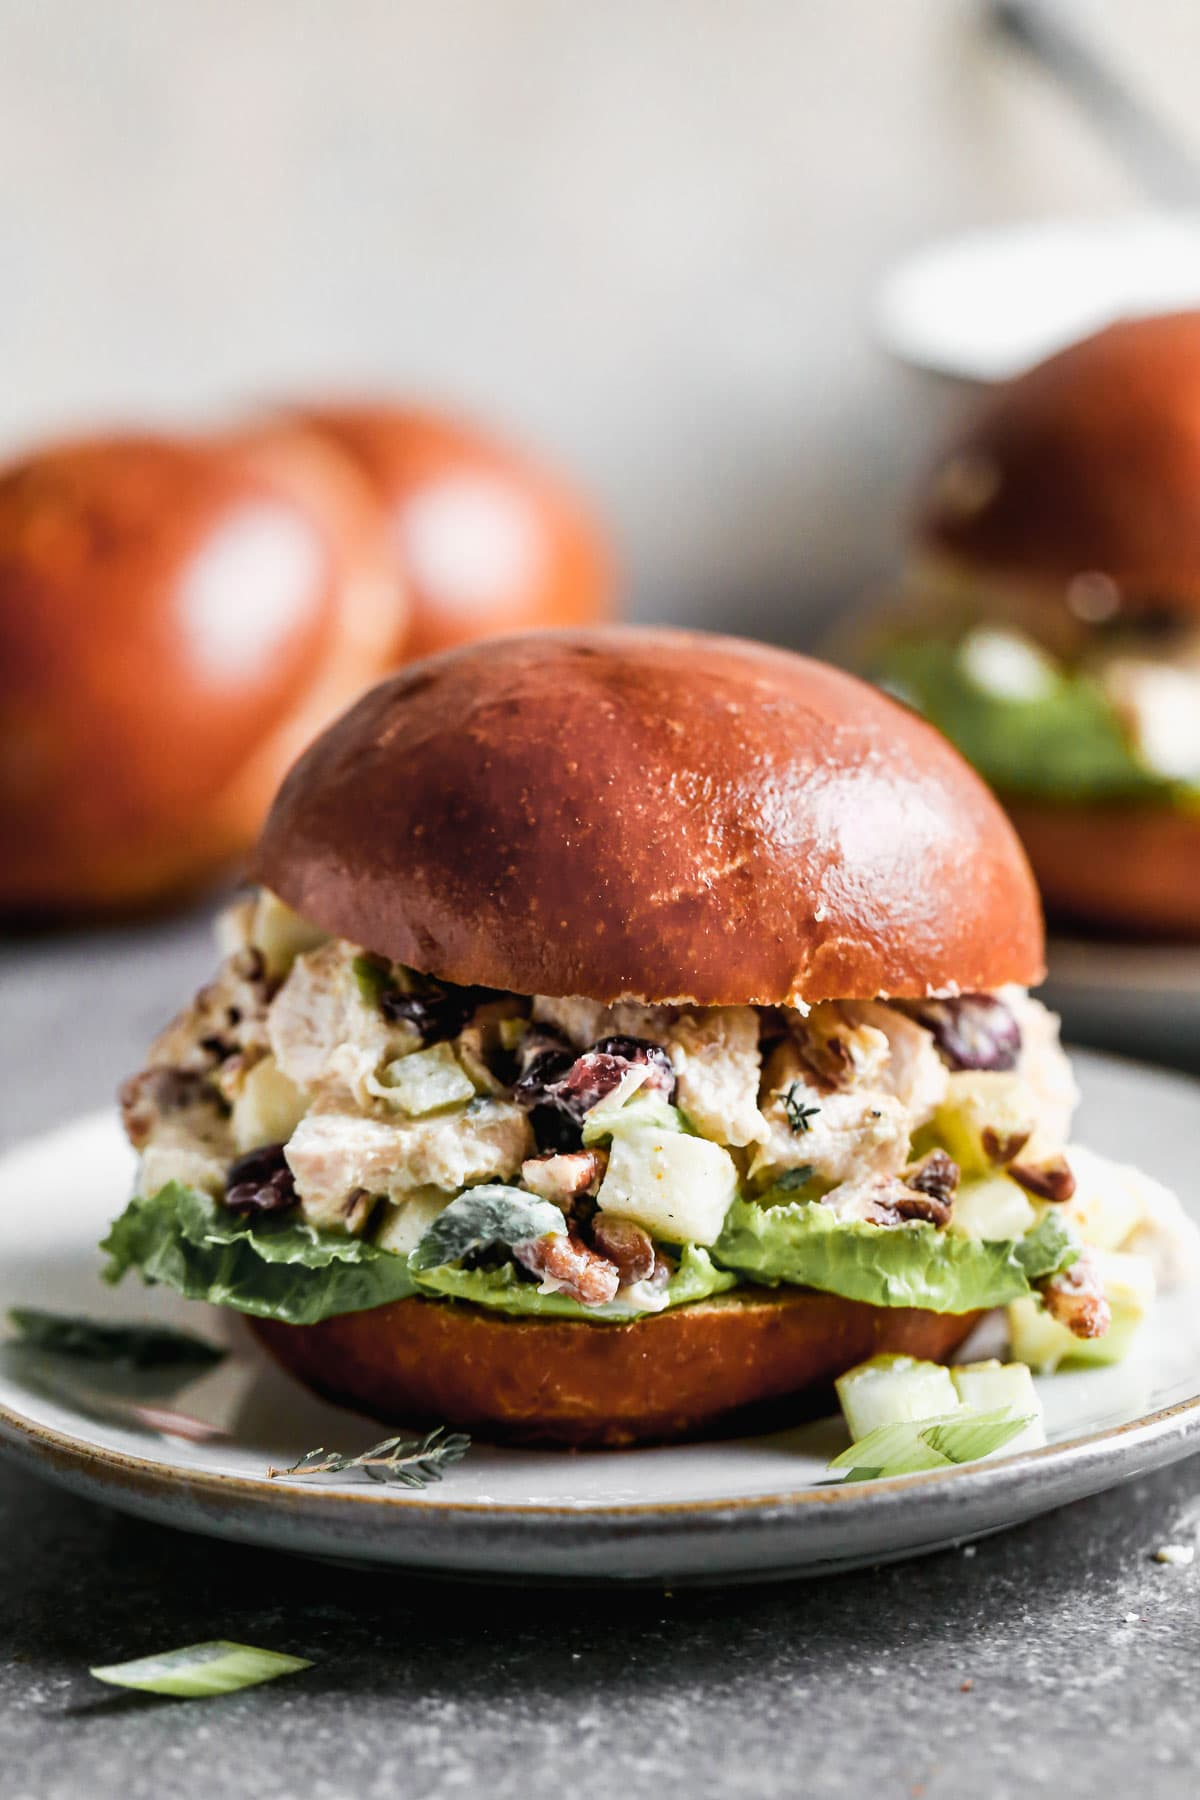 A turkey salad sandwich on a bun